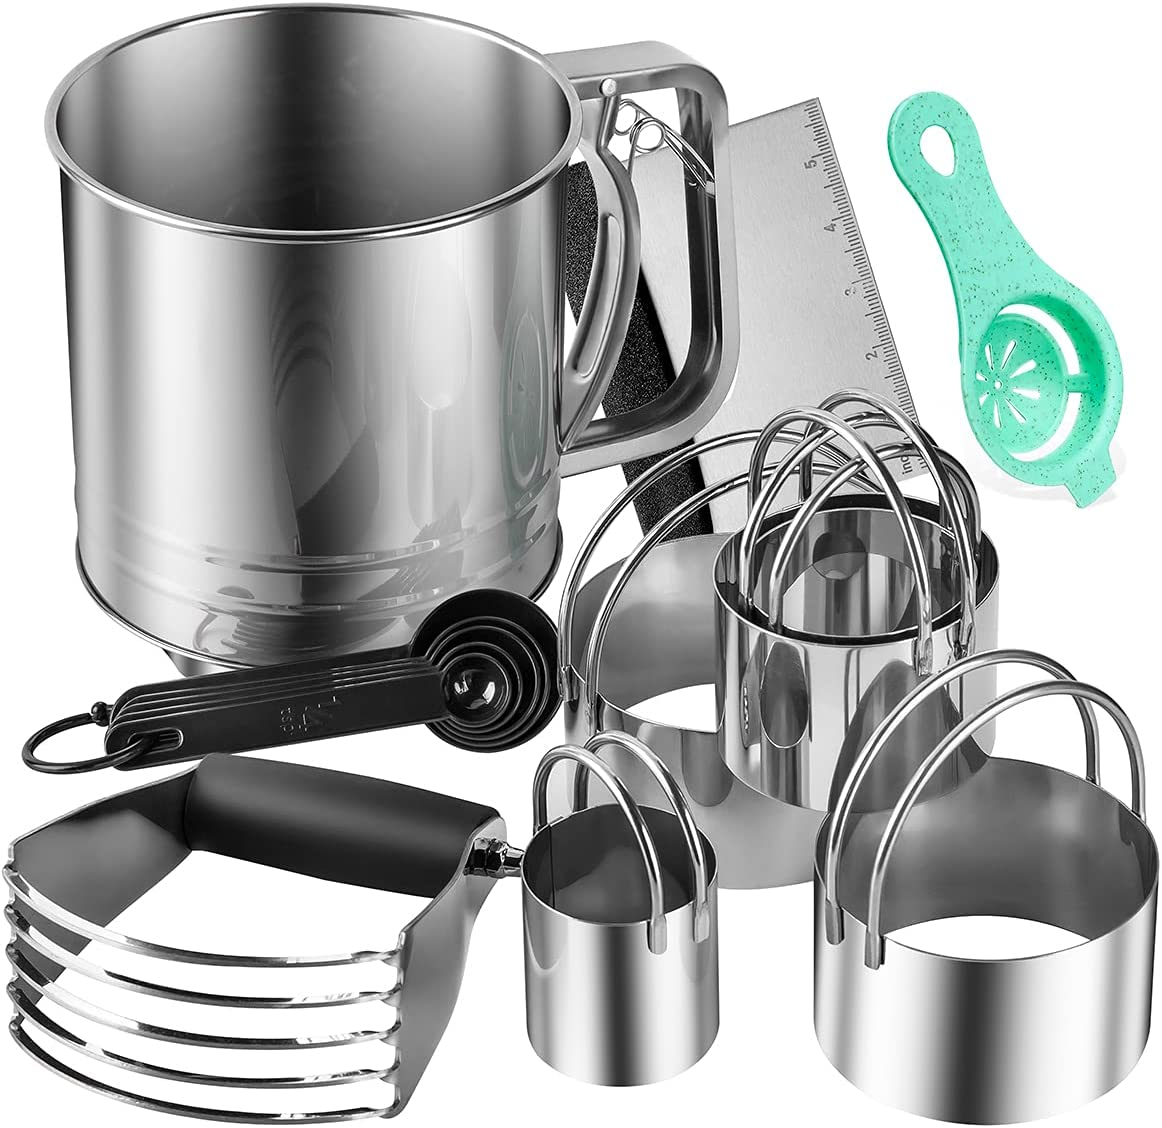 BYkooc Popular Biscuit Cutter Set Pastry Flour Stainless Steel Now on sale Si